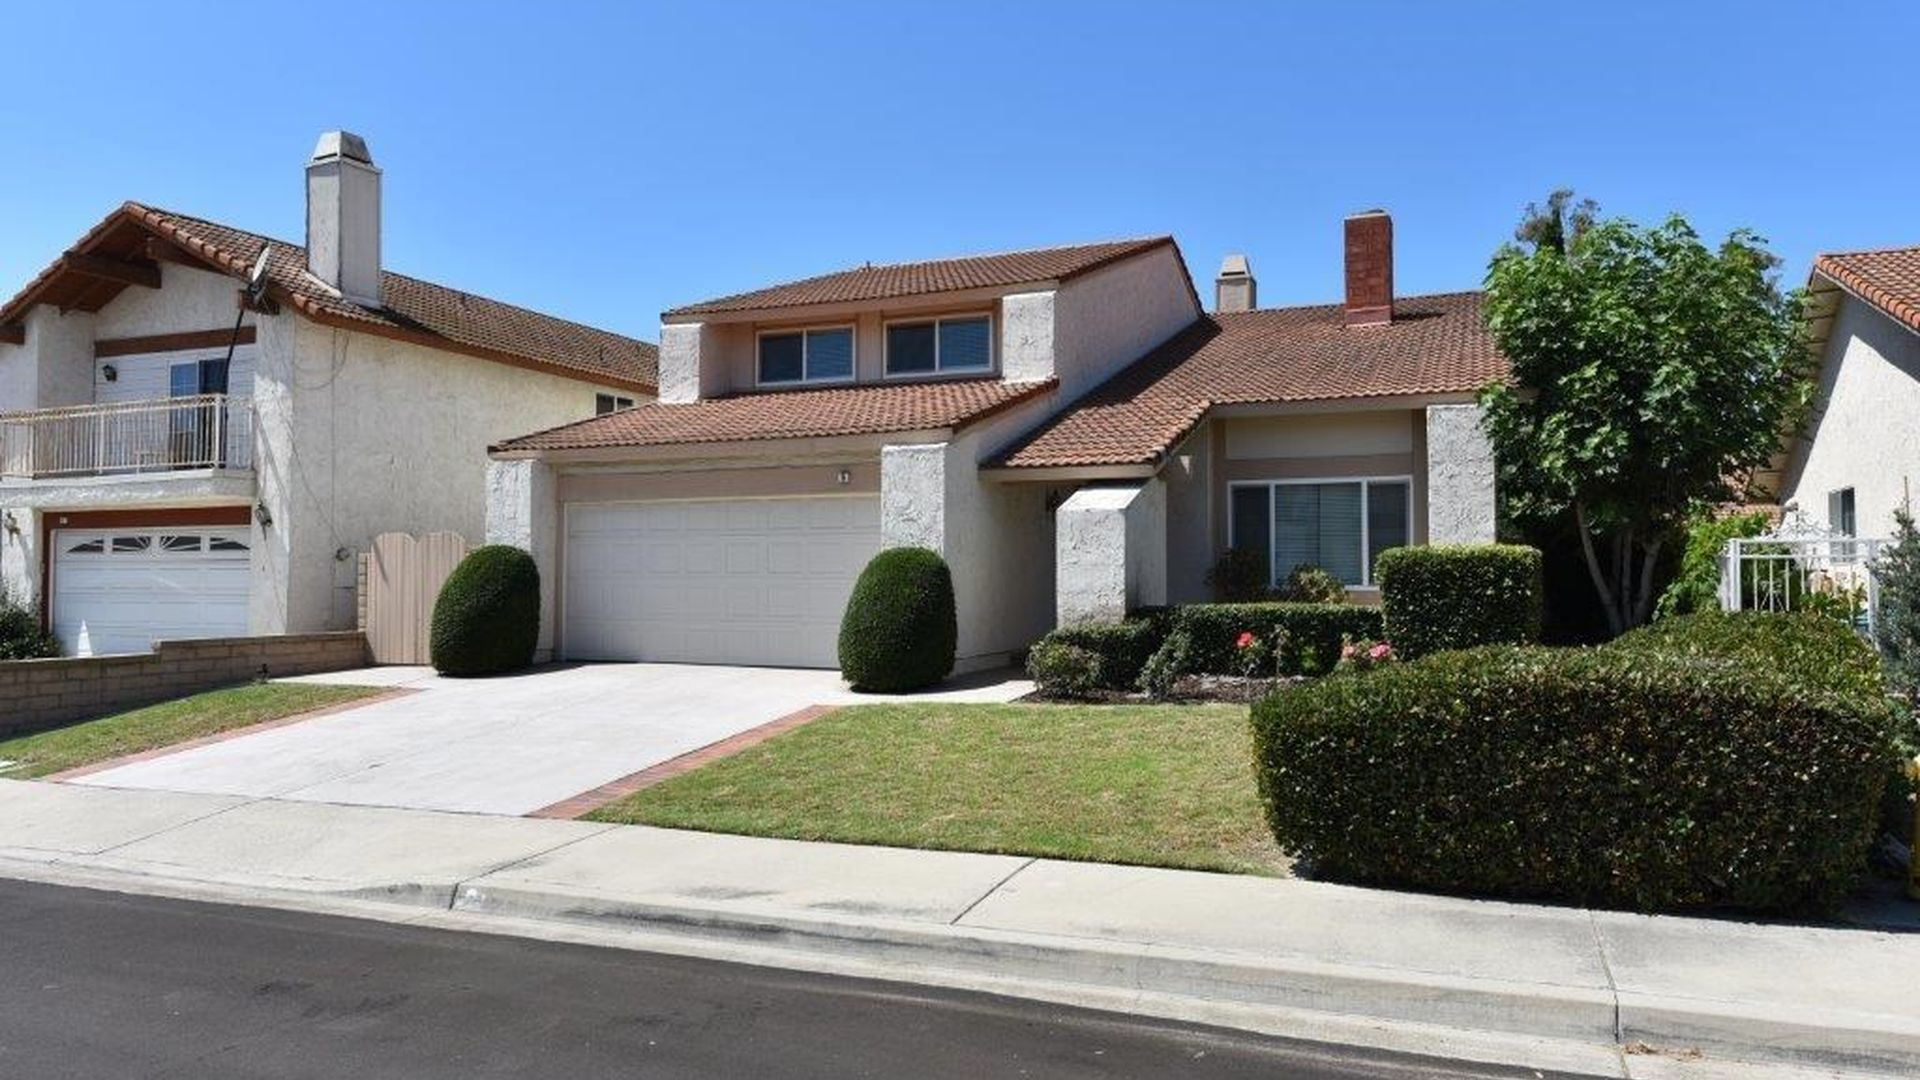 Close To Uci - Irvine Real Estate - Irvine CA Homes For Sale